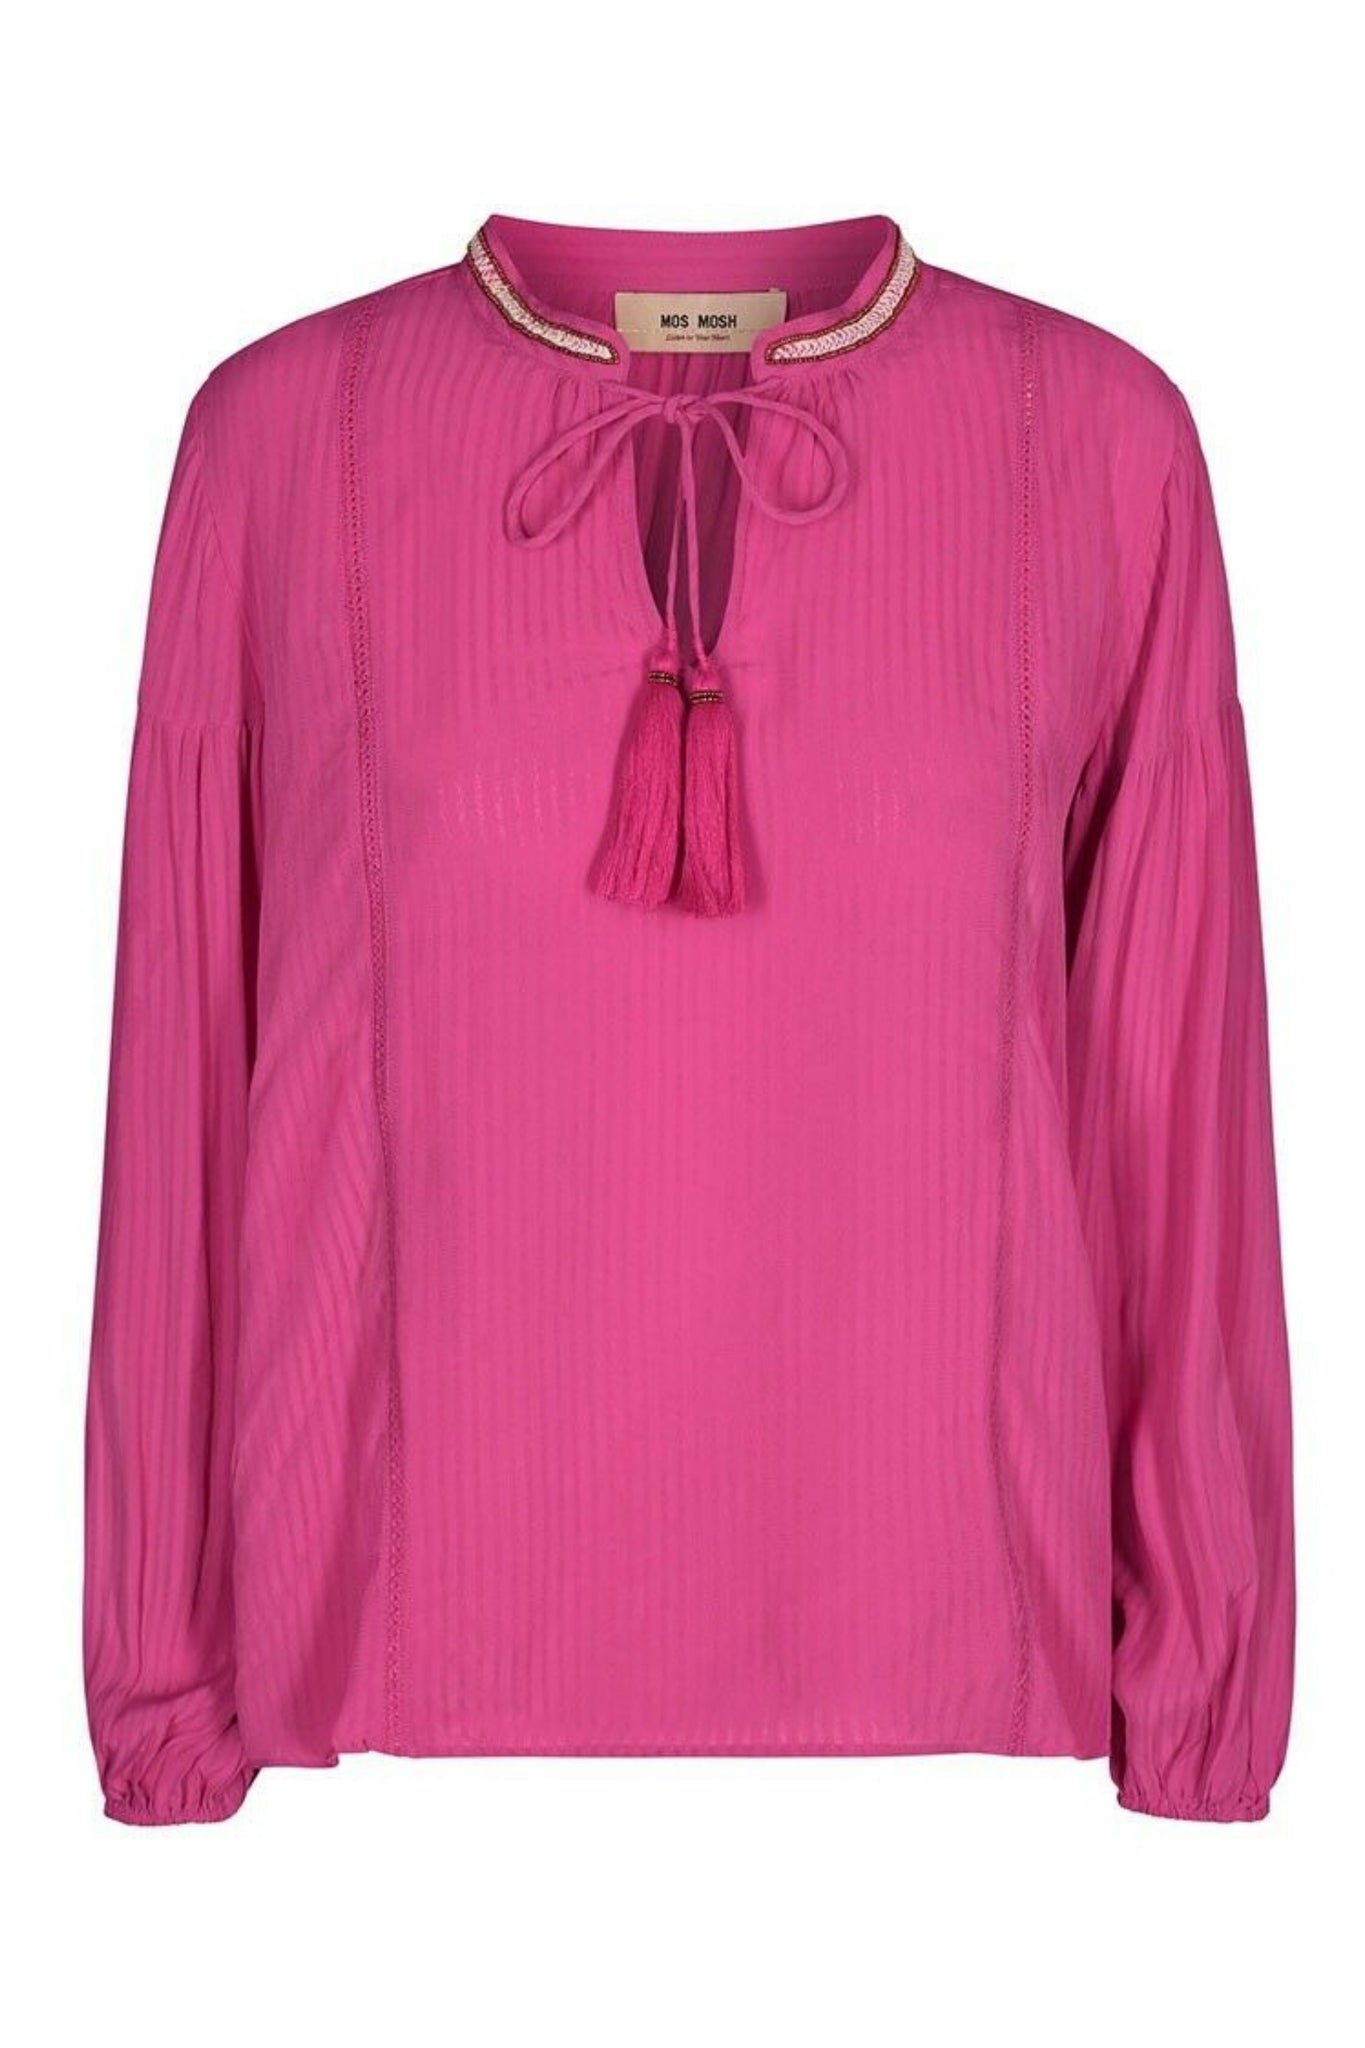 Buy Mos Mosh Raspberry Boho Blouse now at Smoke and Mirrors Boutique. Premium Mos Mosh Australian Stockist. Mos Mosh ZipPay and Mos Mosh AfterPay available. Buy Mos Mosh Australia with Free Shipping on all orders over $100.